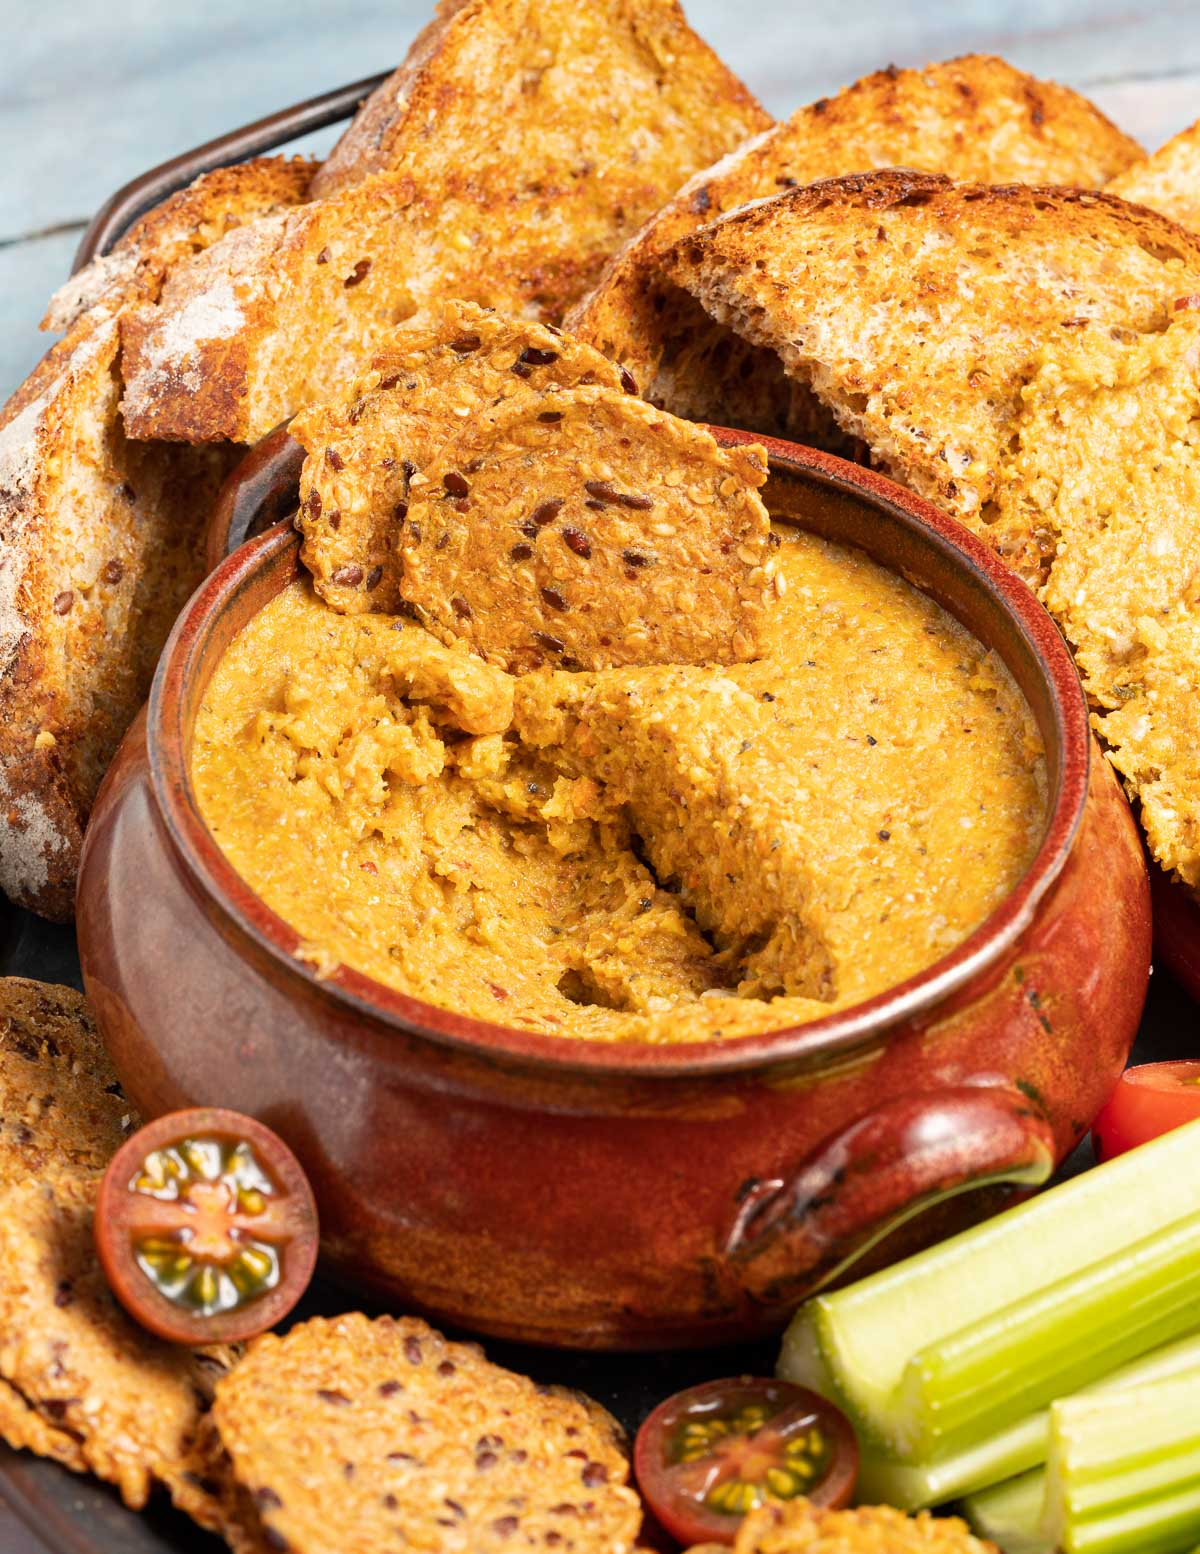 a bowl of vegetable pate with crackers